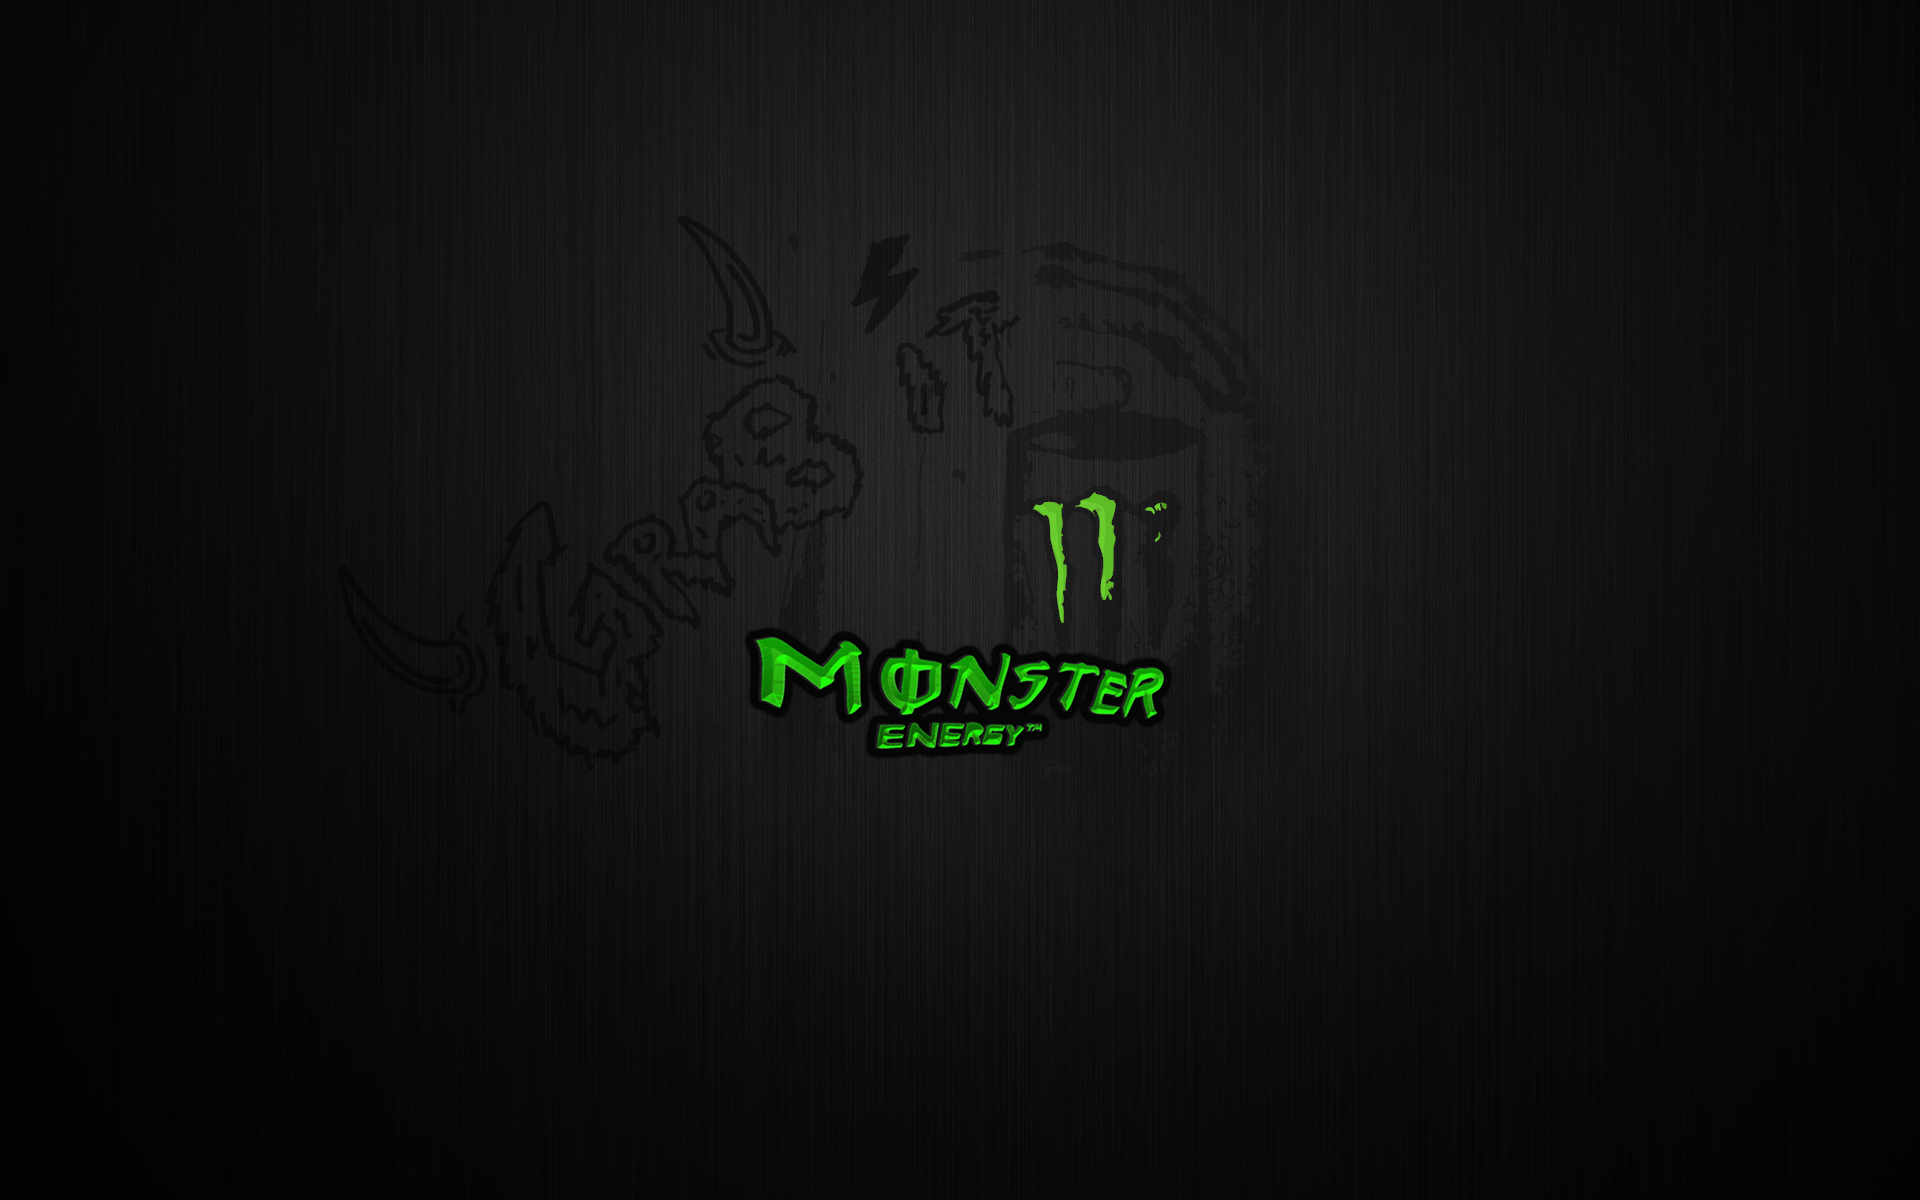 Monster Energy Wallpaper by pname on deviantART 1920x1200